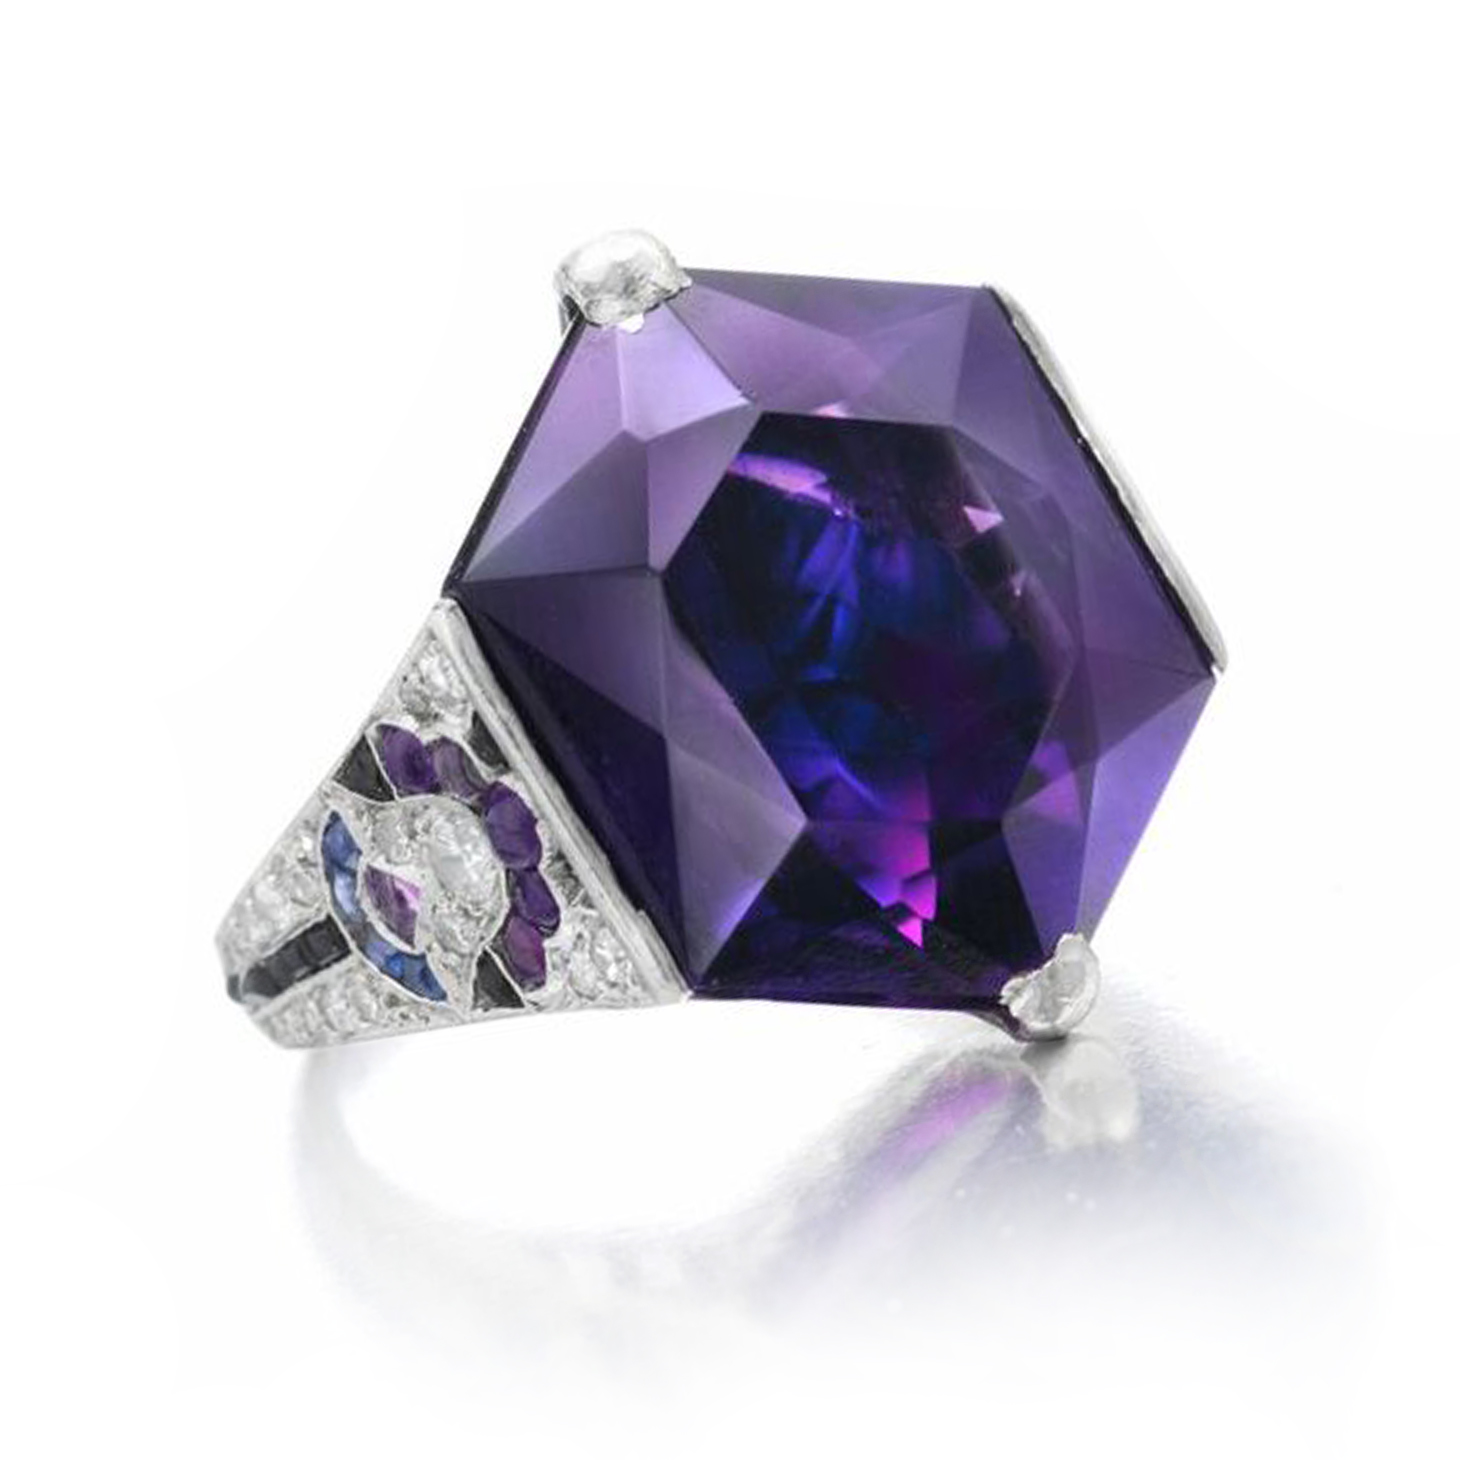 An Egyptian Revival Amethyst, Sapphire and Onyx Ring, circa 1925, by Mauboussin